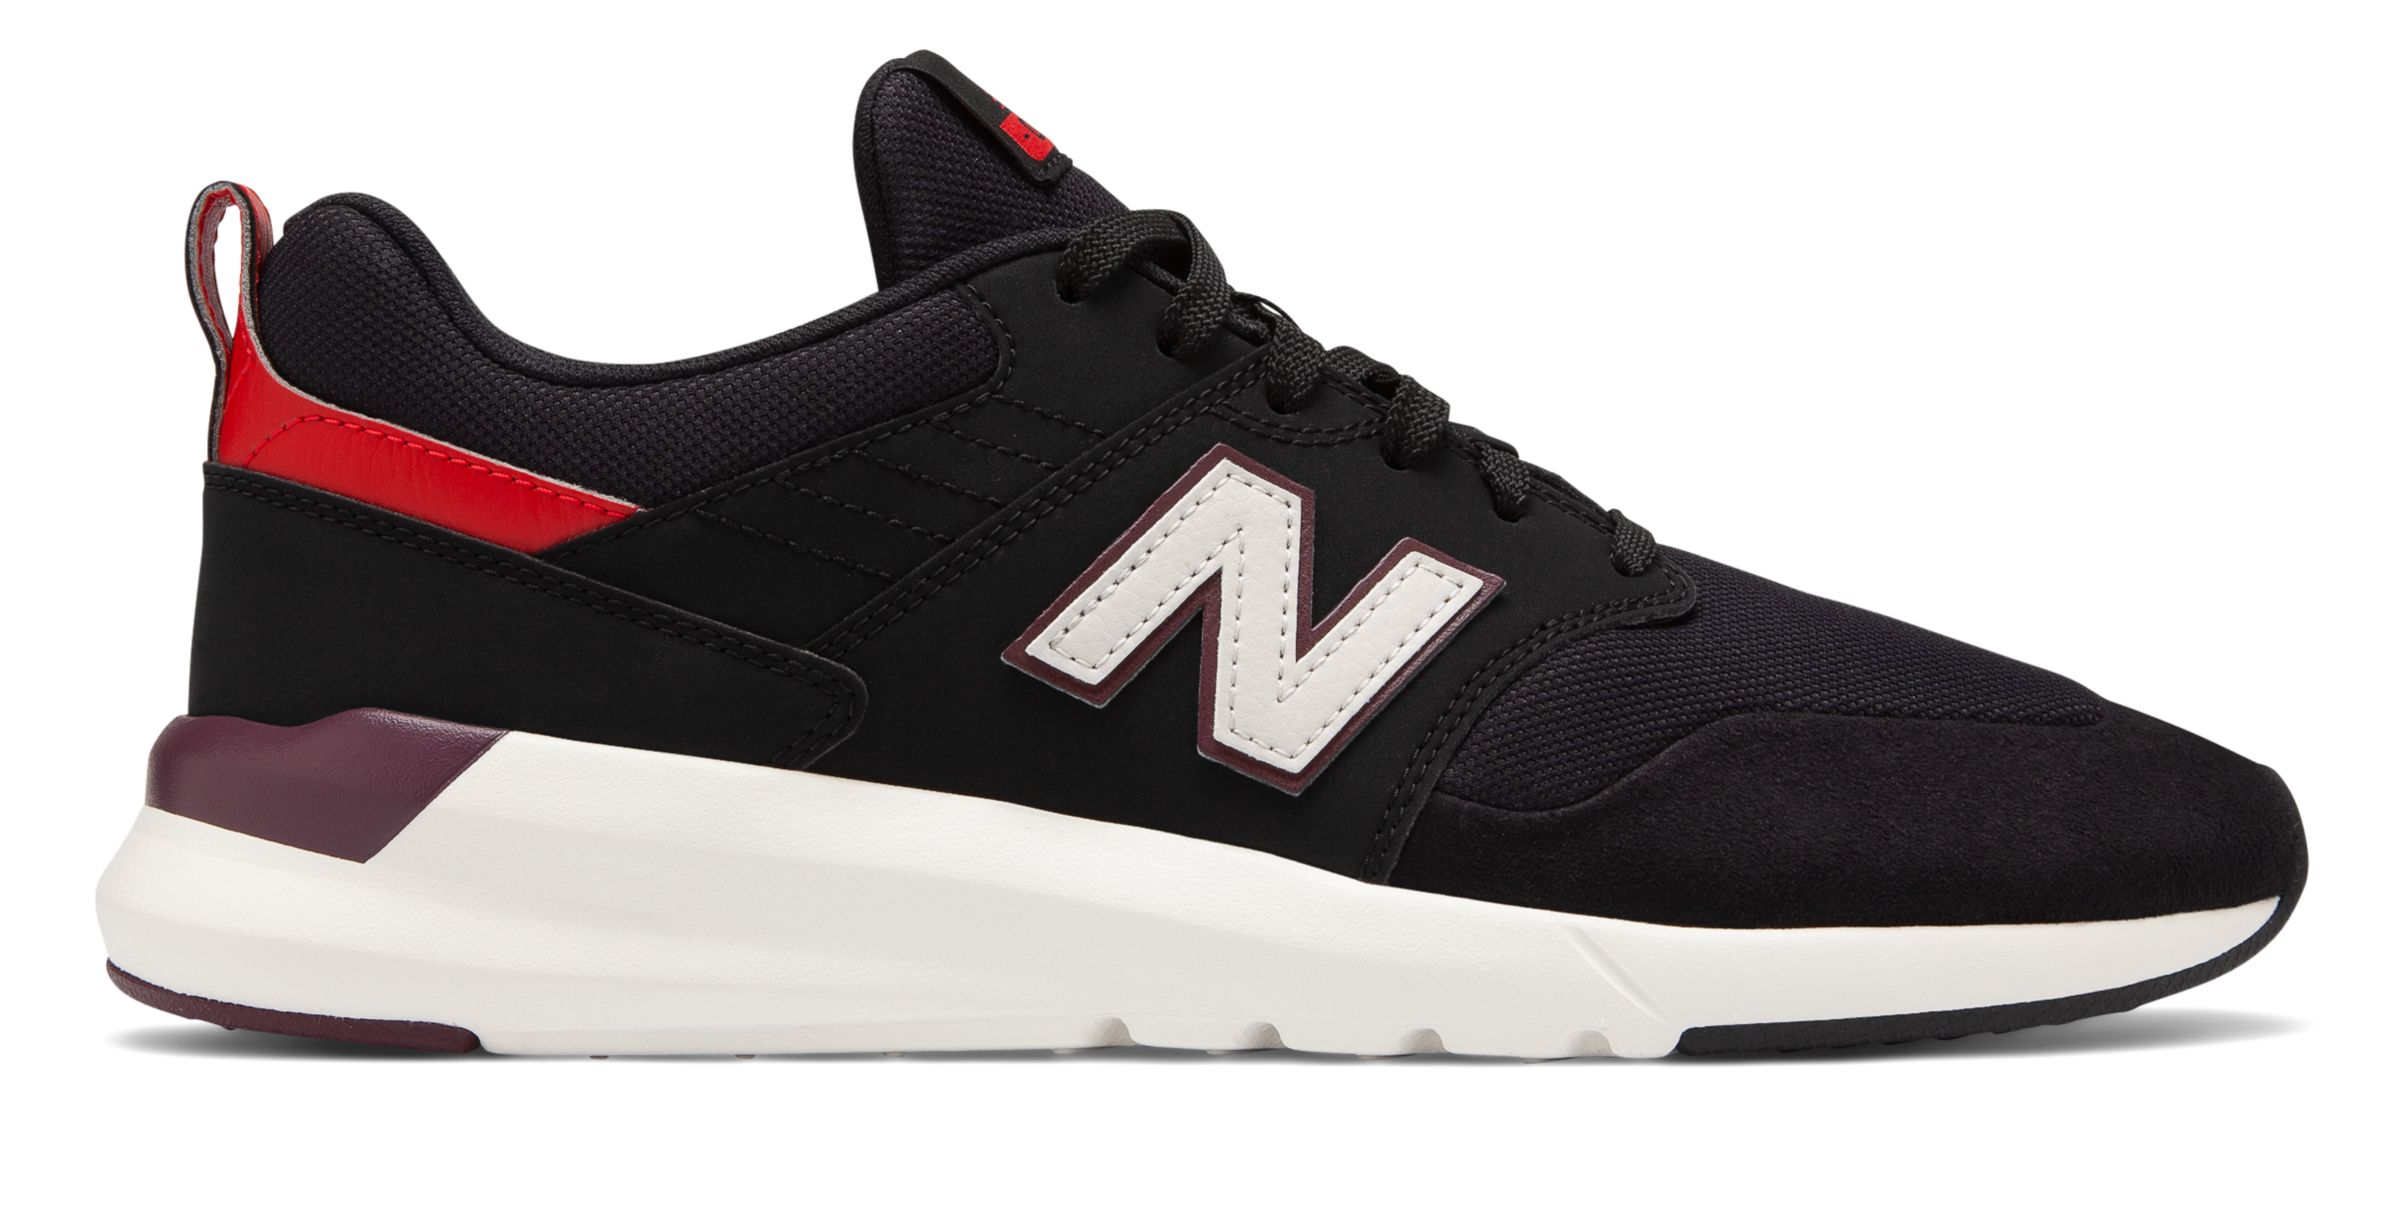 Balance Men's 009 Shoes Black with Red